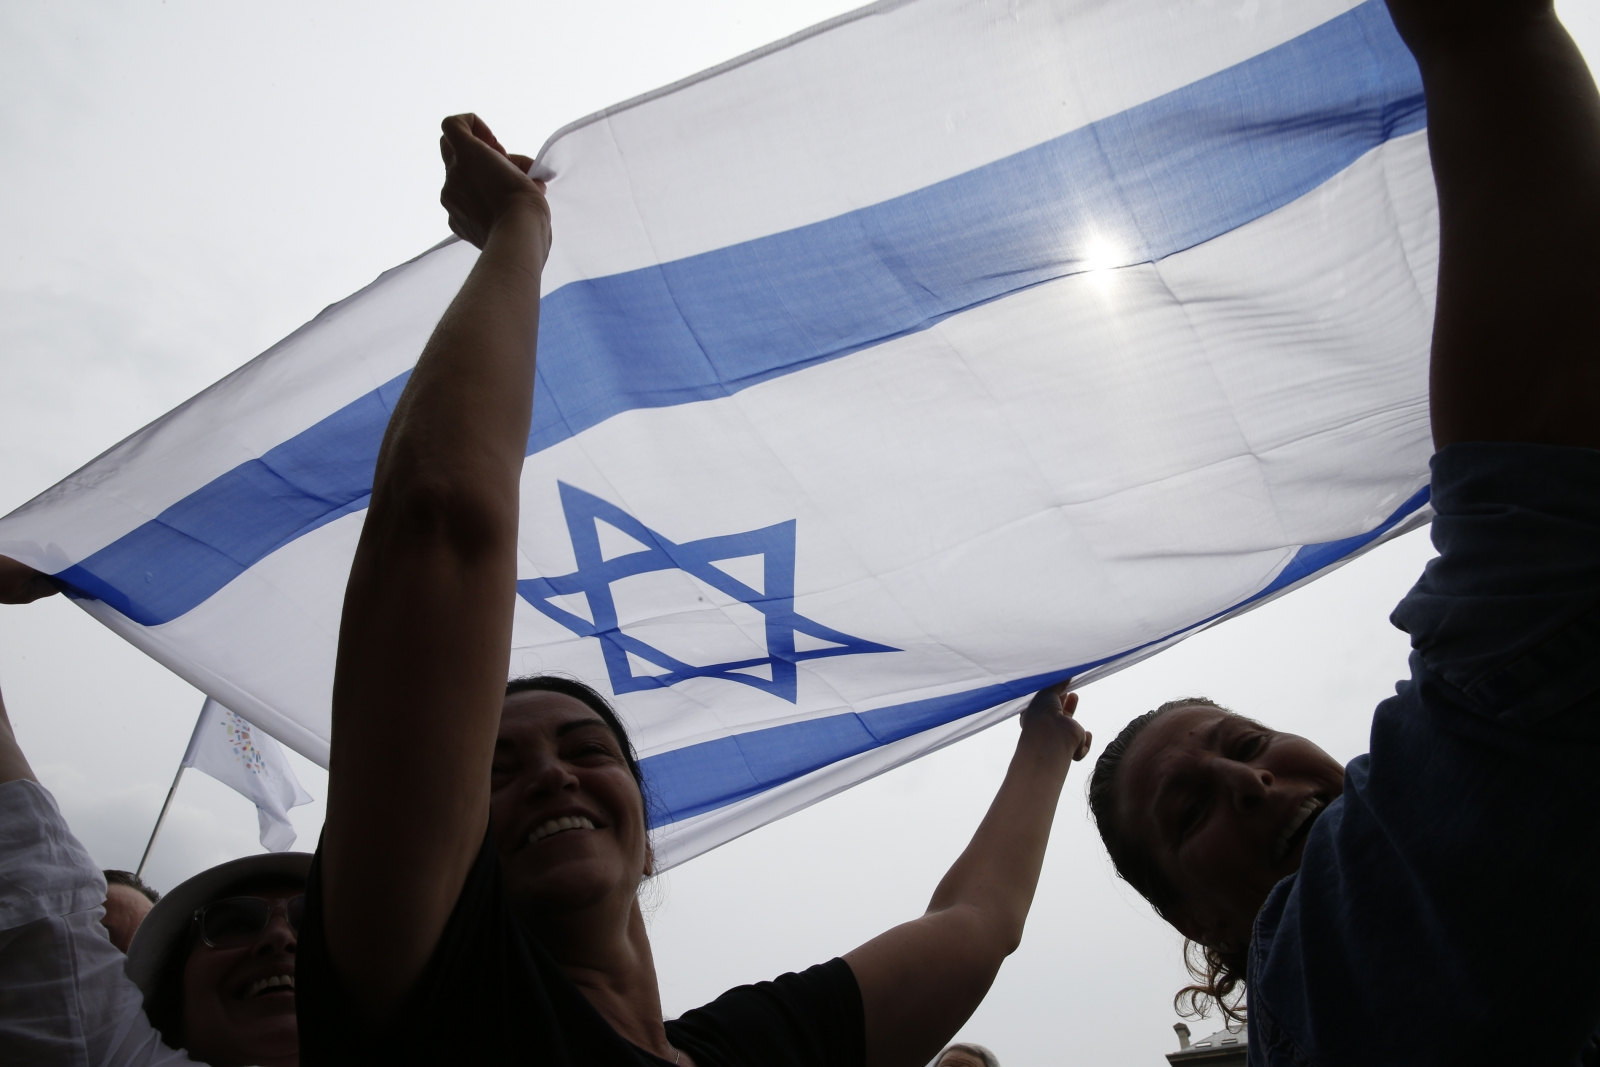 Israel's online Iron Dome